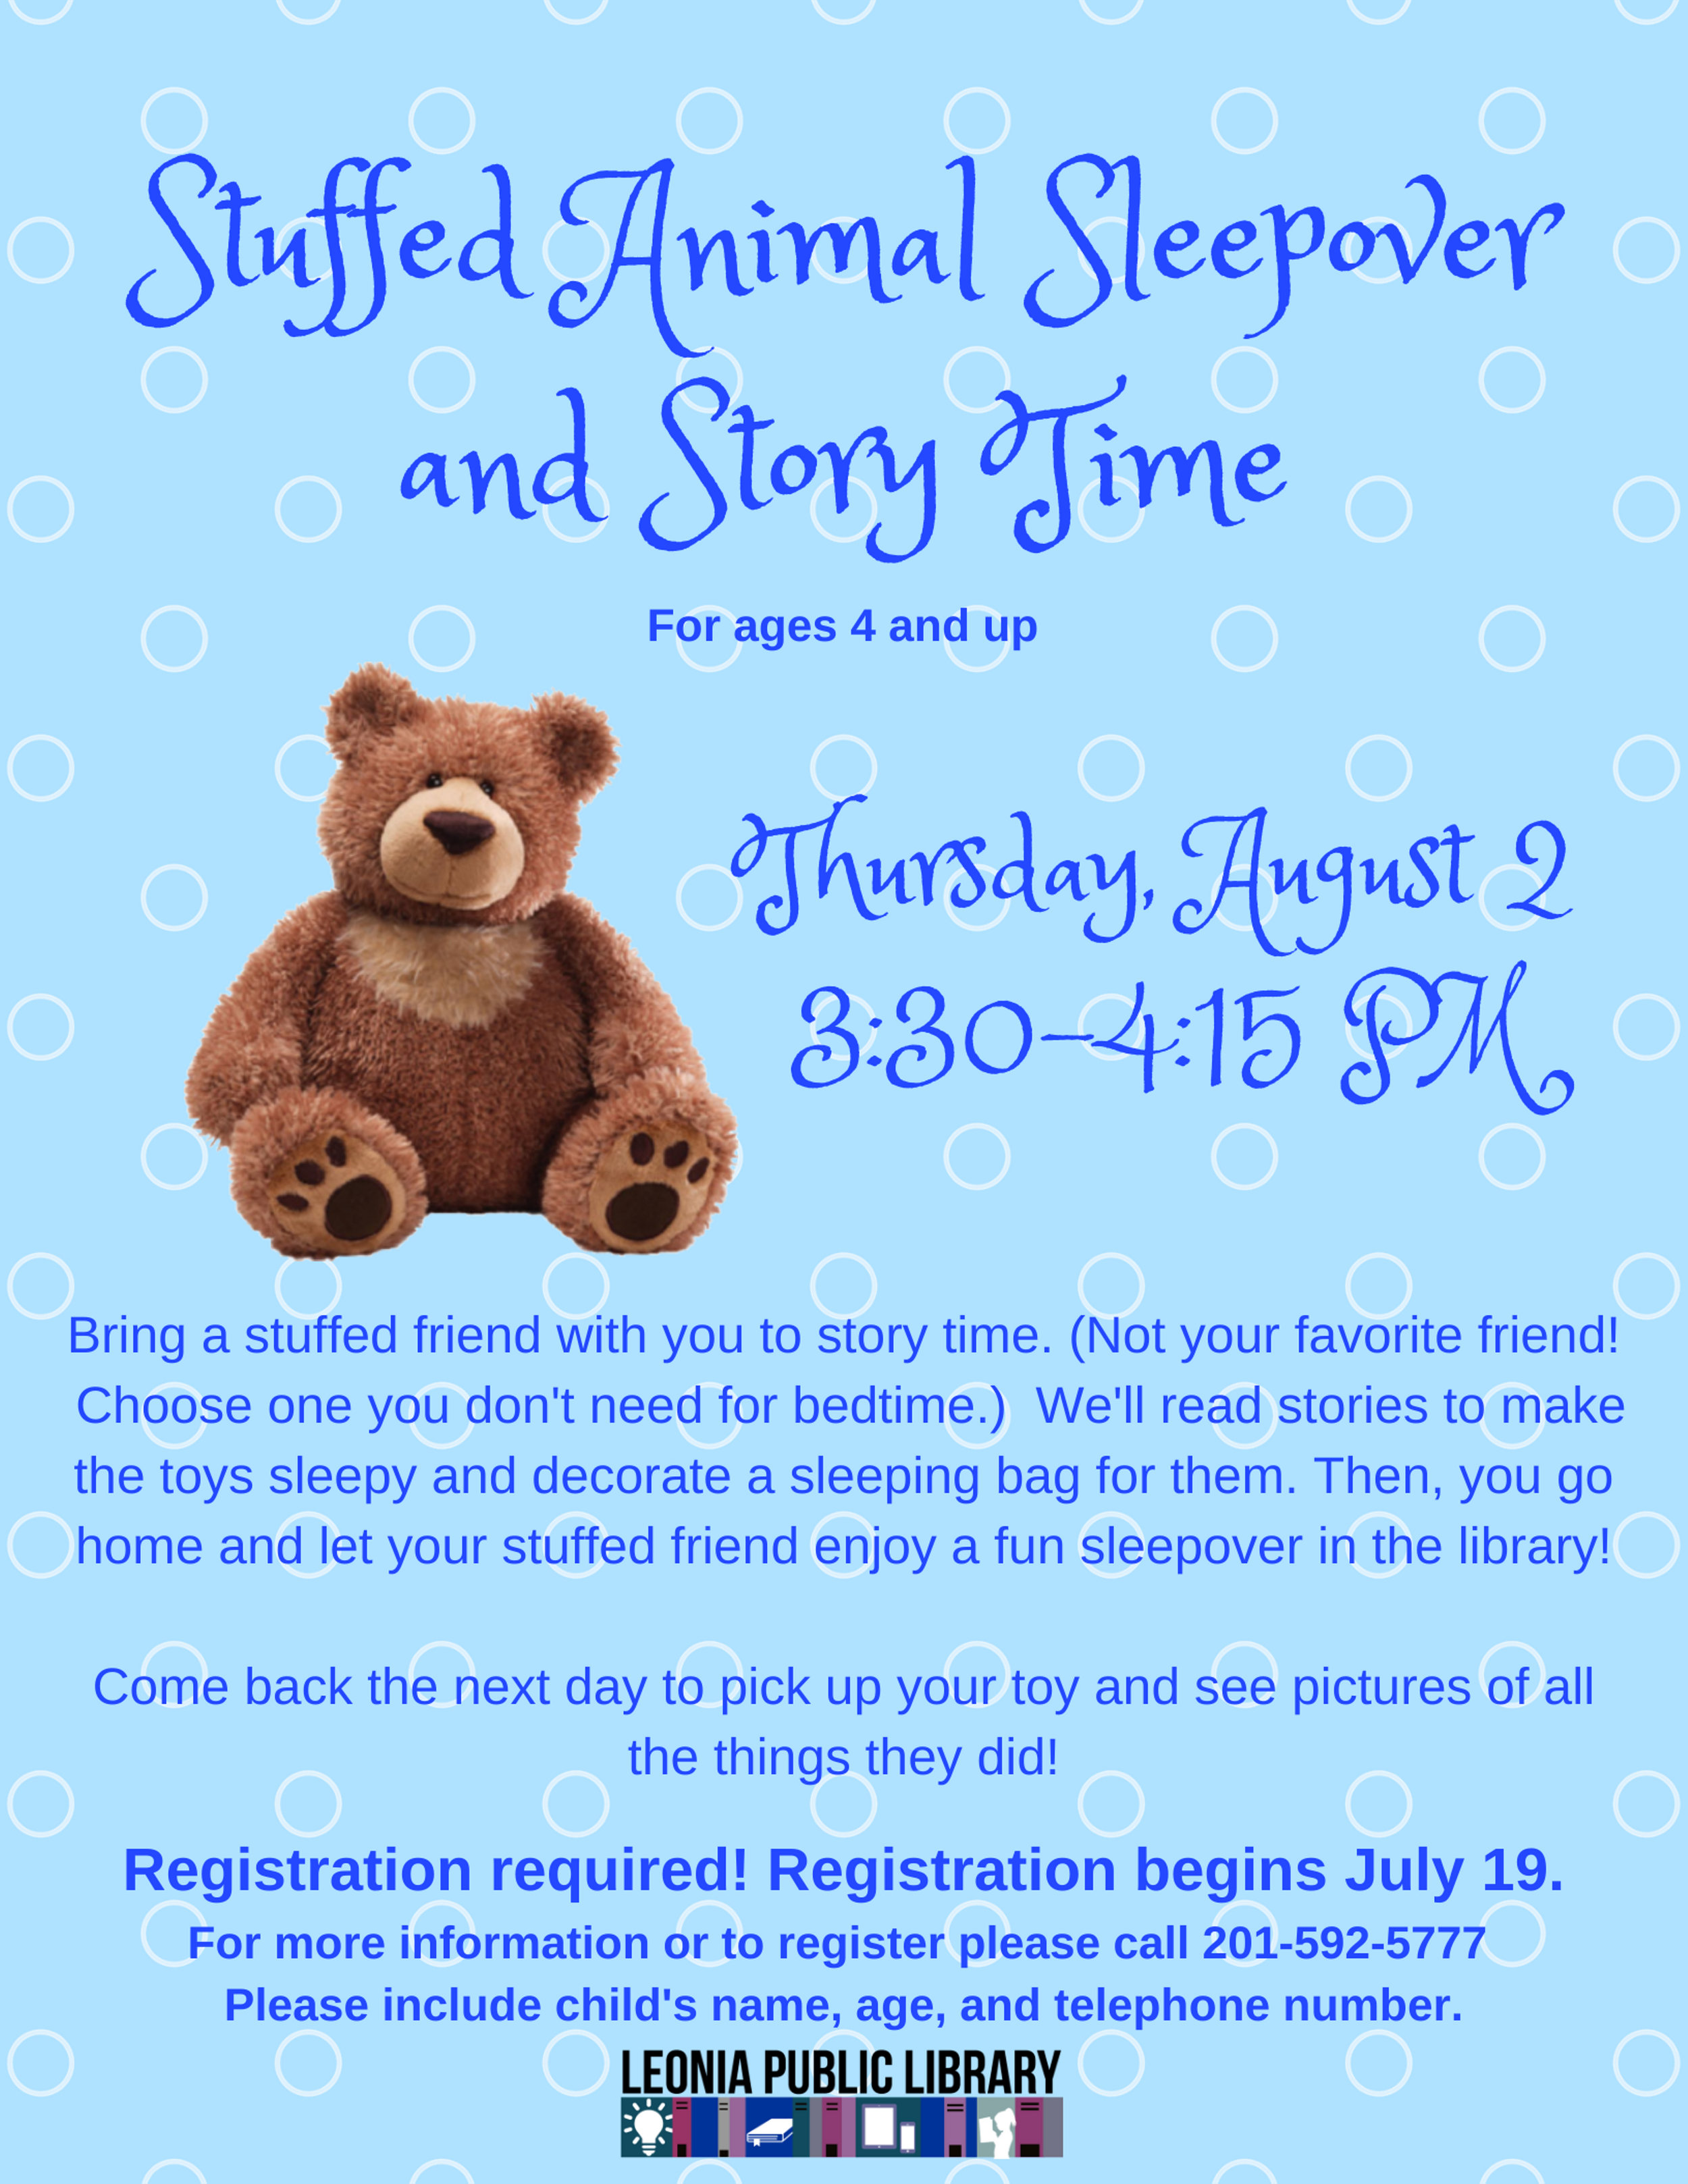 Stuffed Animal Sleepover and Story Time.jpg